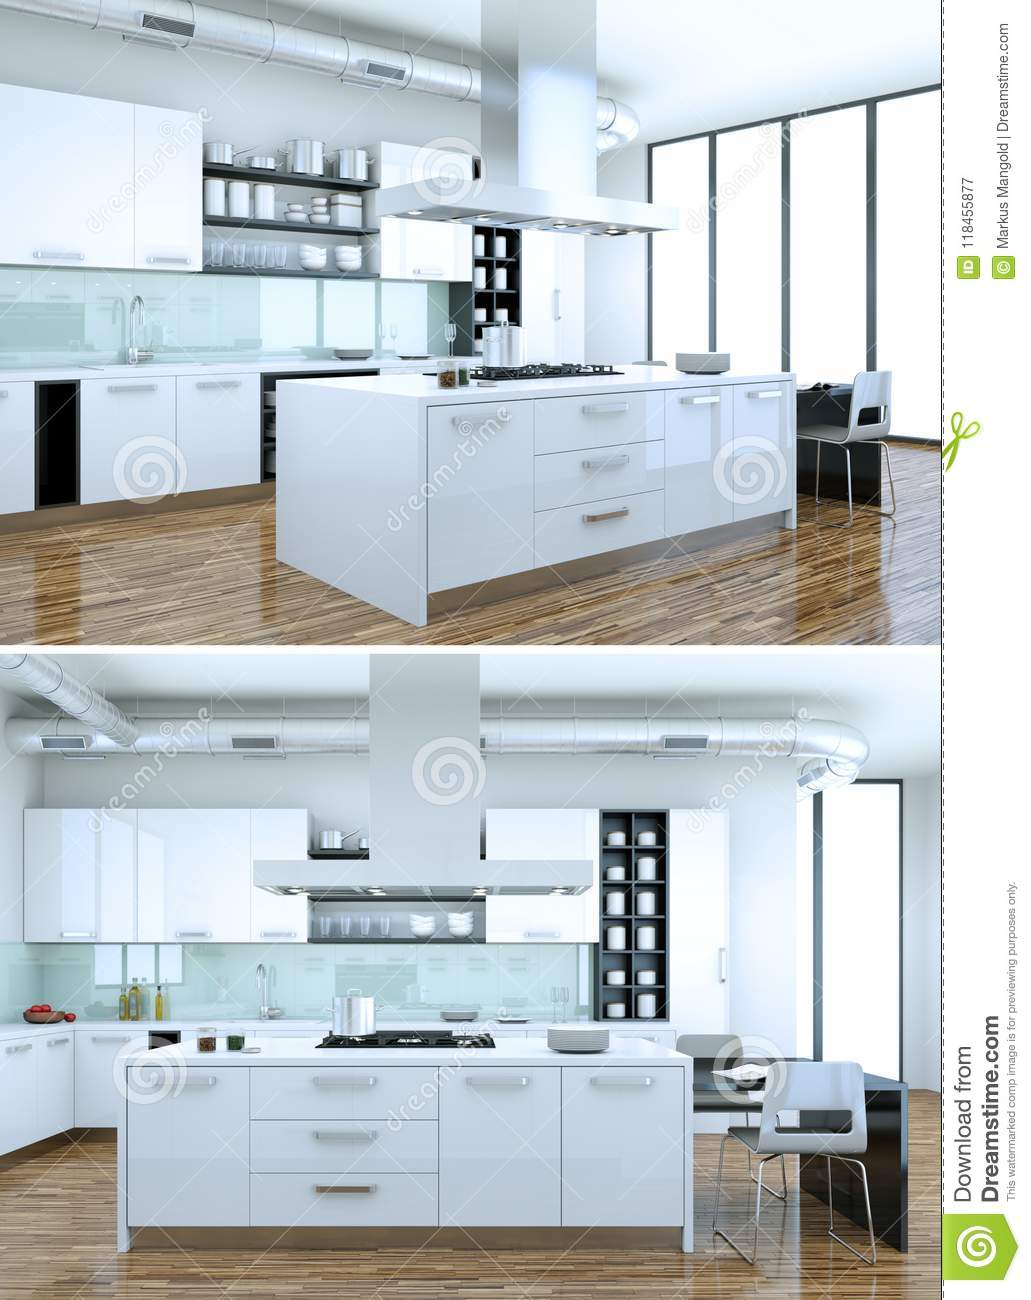 Two Views Of Modern White Kitchen Interior Design Stock Illustration ...